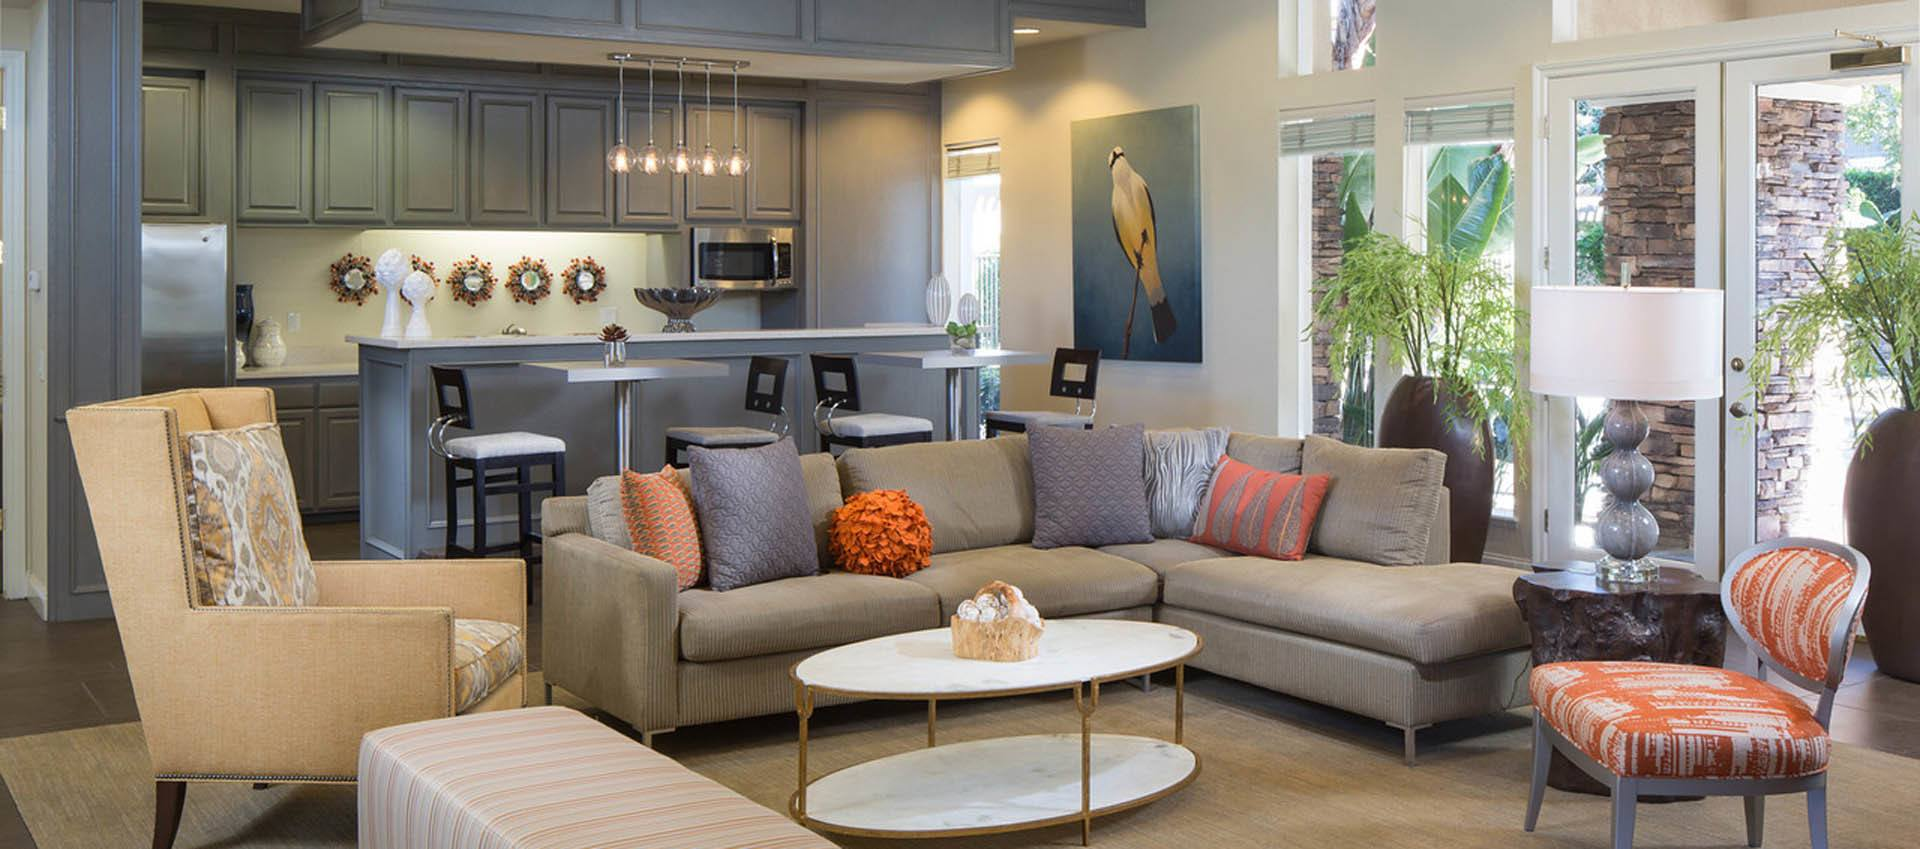 Your new living room at Alicante Apartment Homes